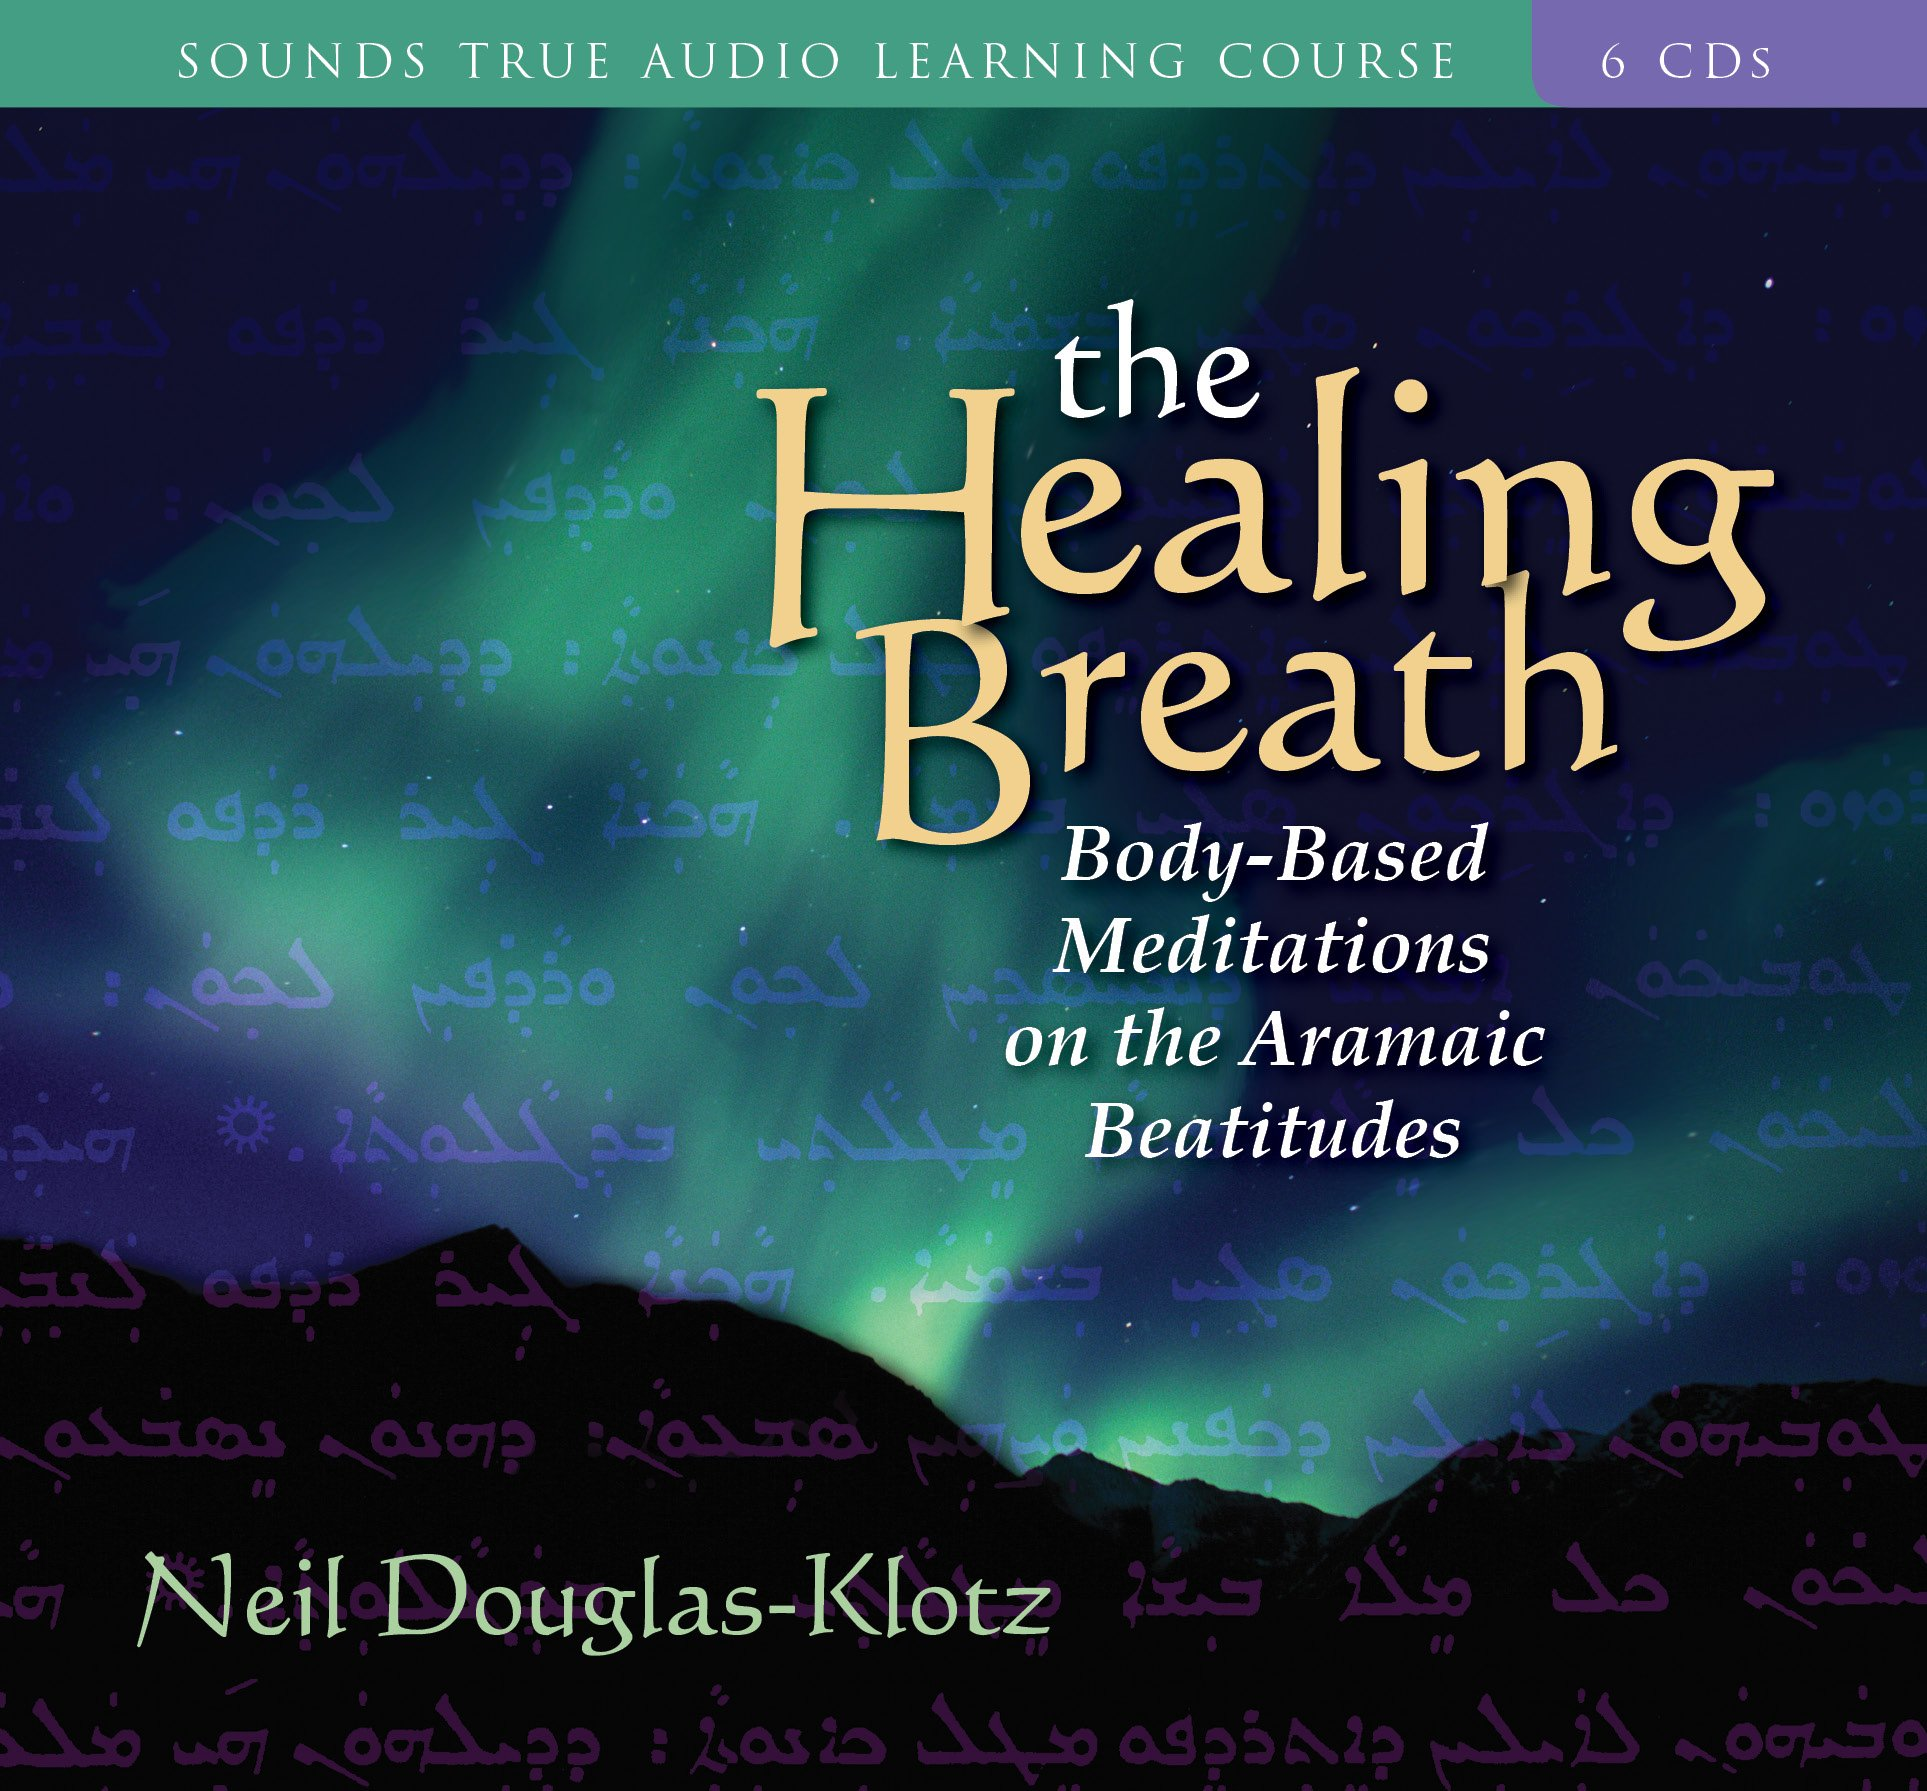 The Healing Breath: Body-Based Meditations on the Aramaic Beatitudes by Brand: Sounds True, Incorporated